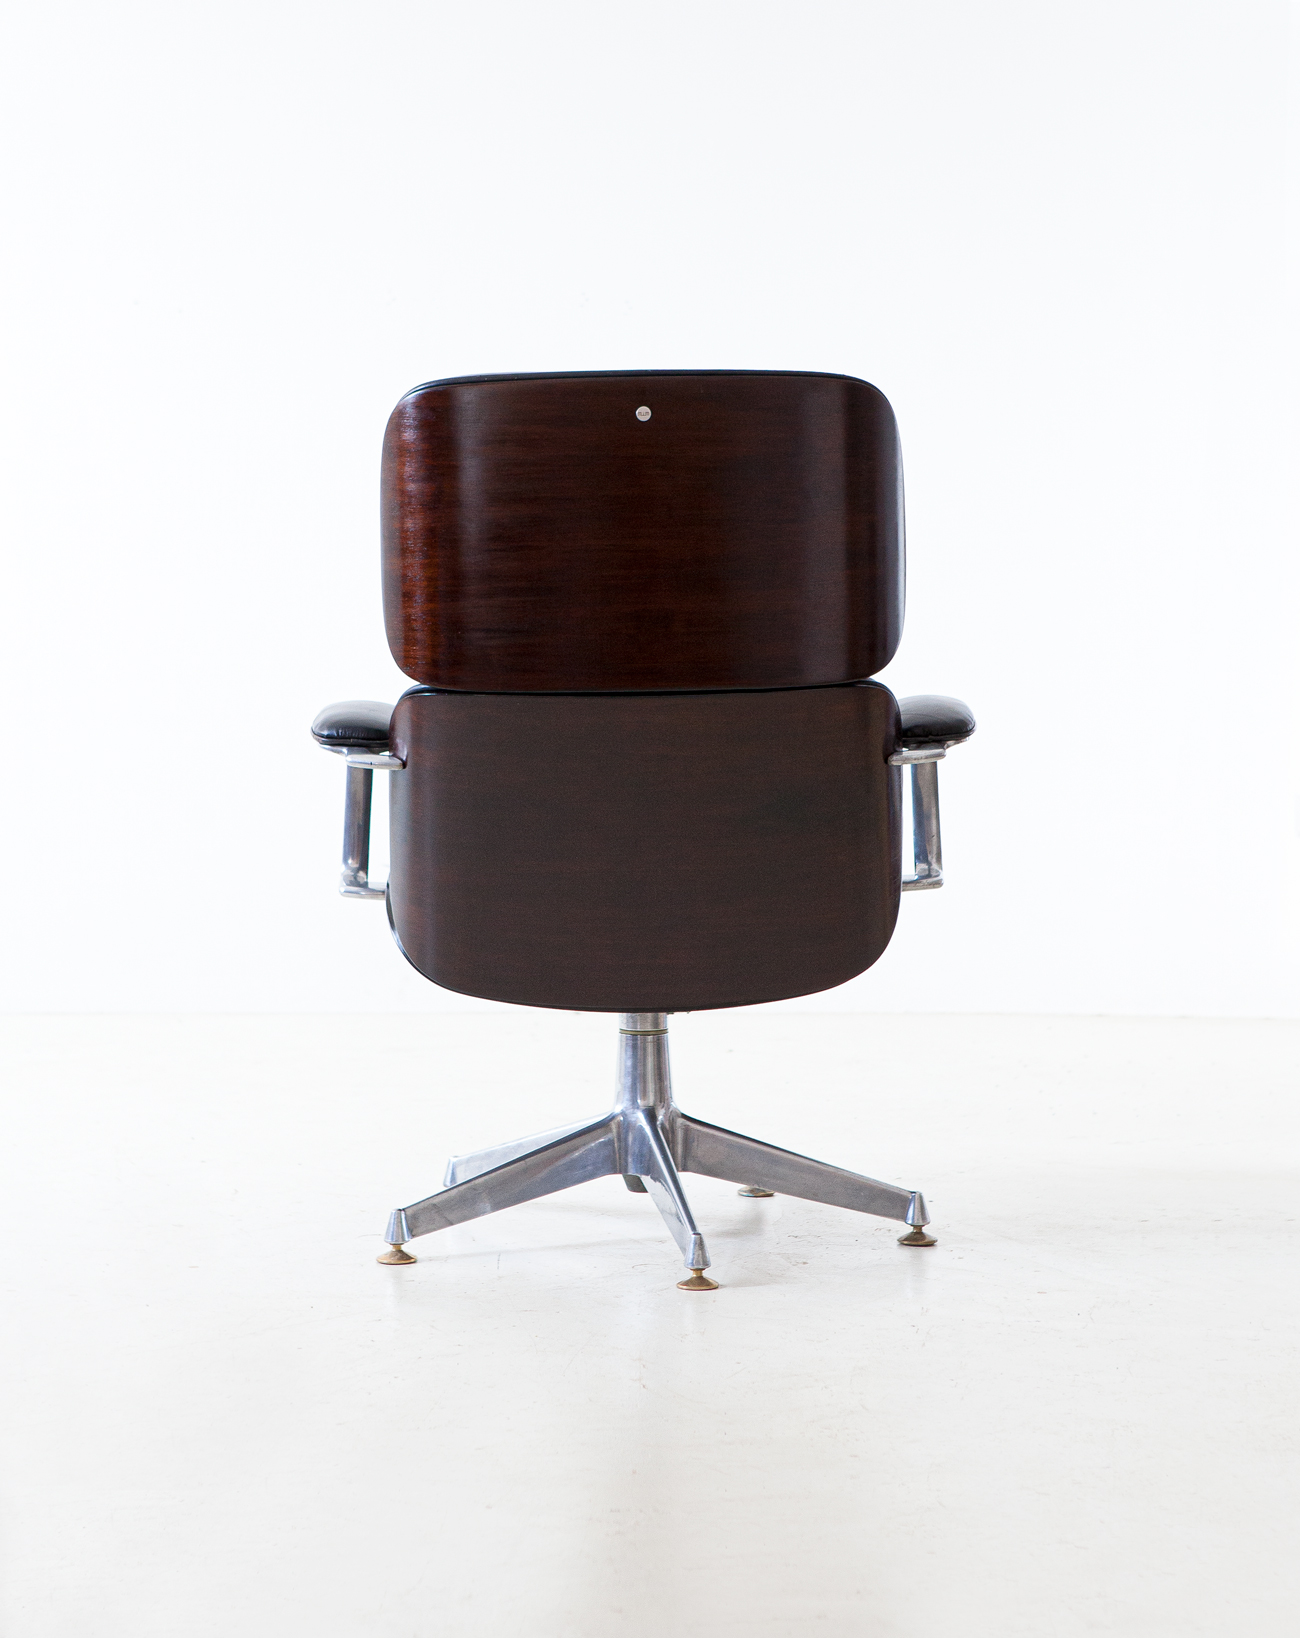 1950s-executive-desk-chair-by-Ico-Parisi-for-M.i.M.-5-SE332